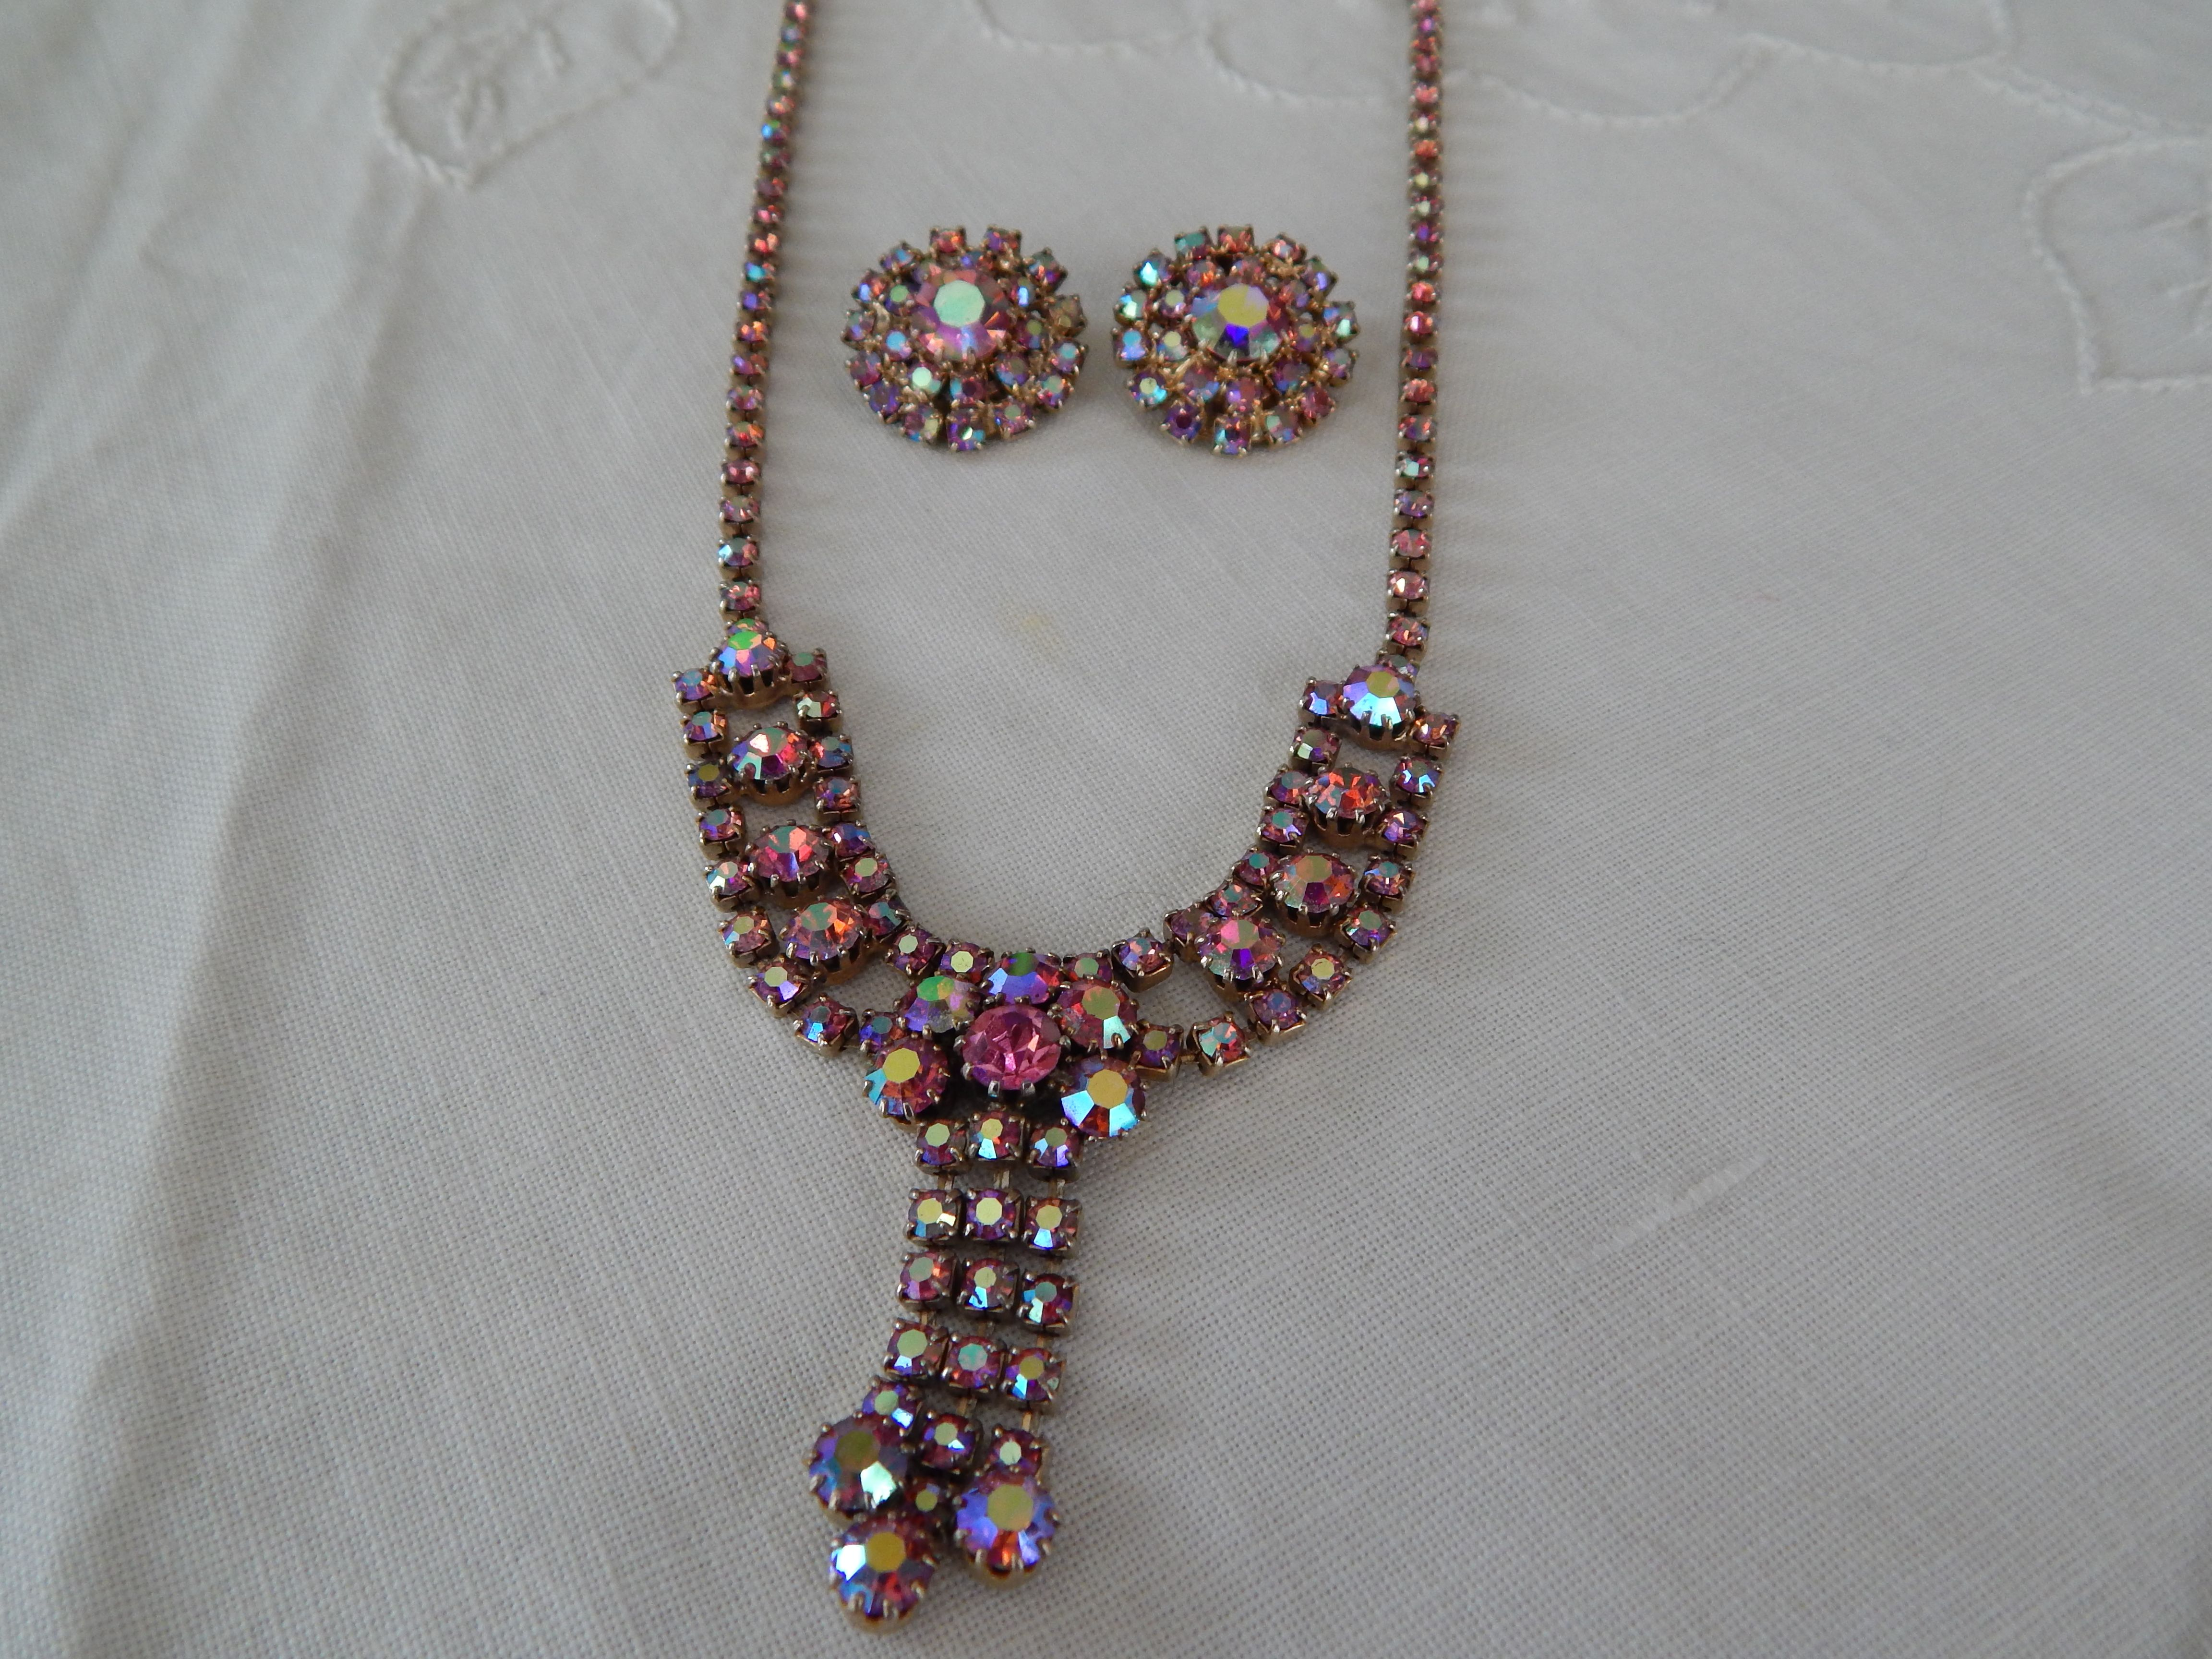 Vintage Rhinestone Necklace & Clip On Earrings Set $18 shipped